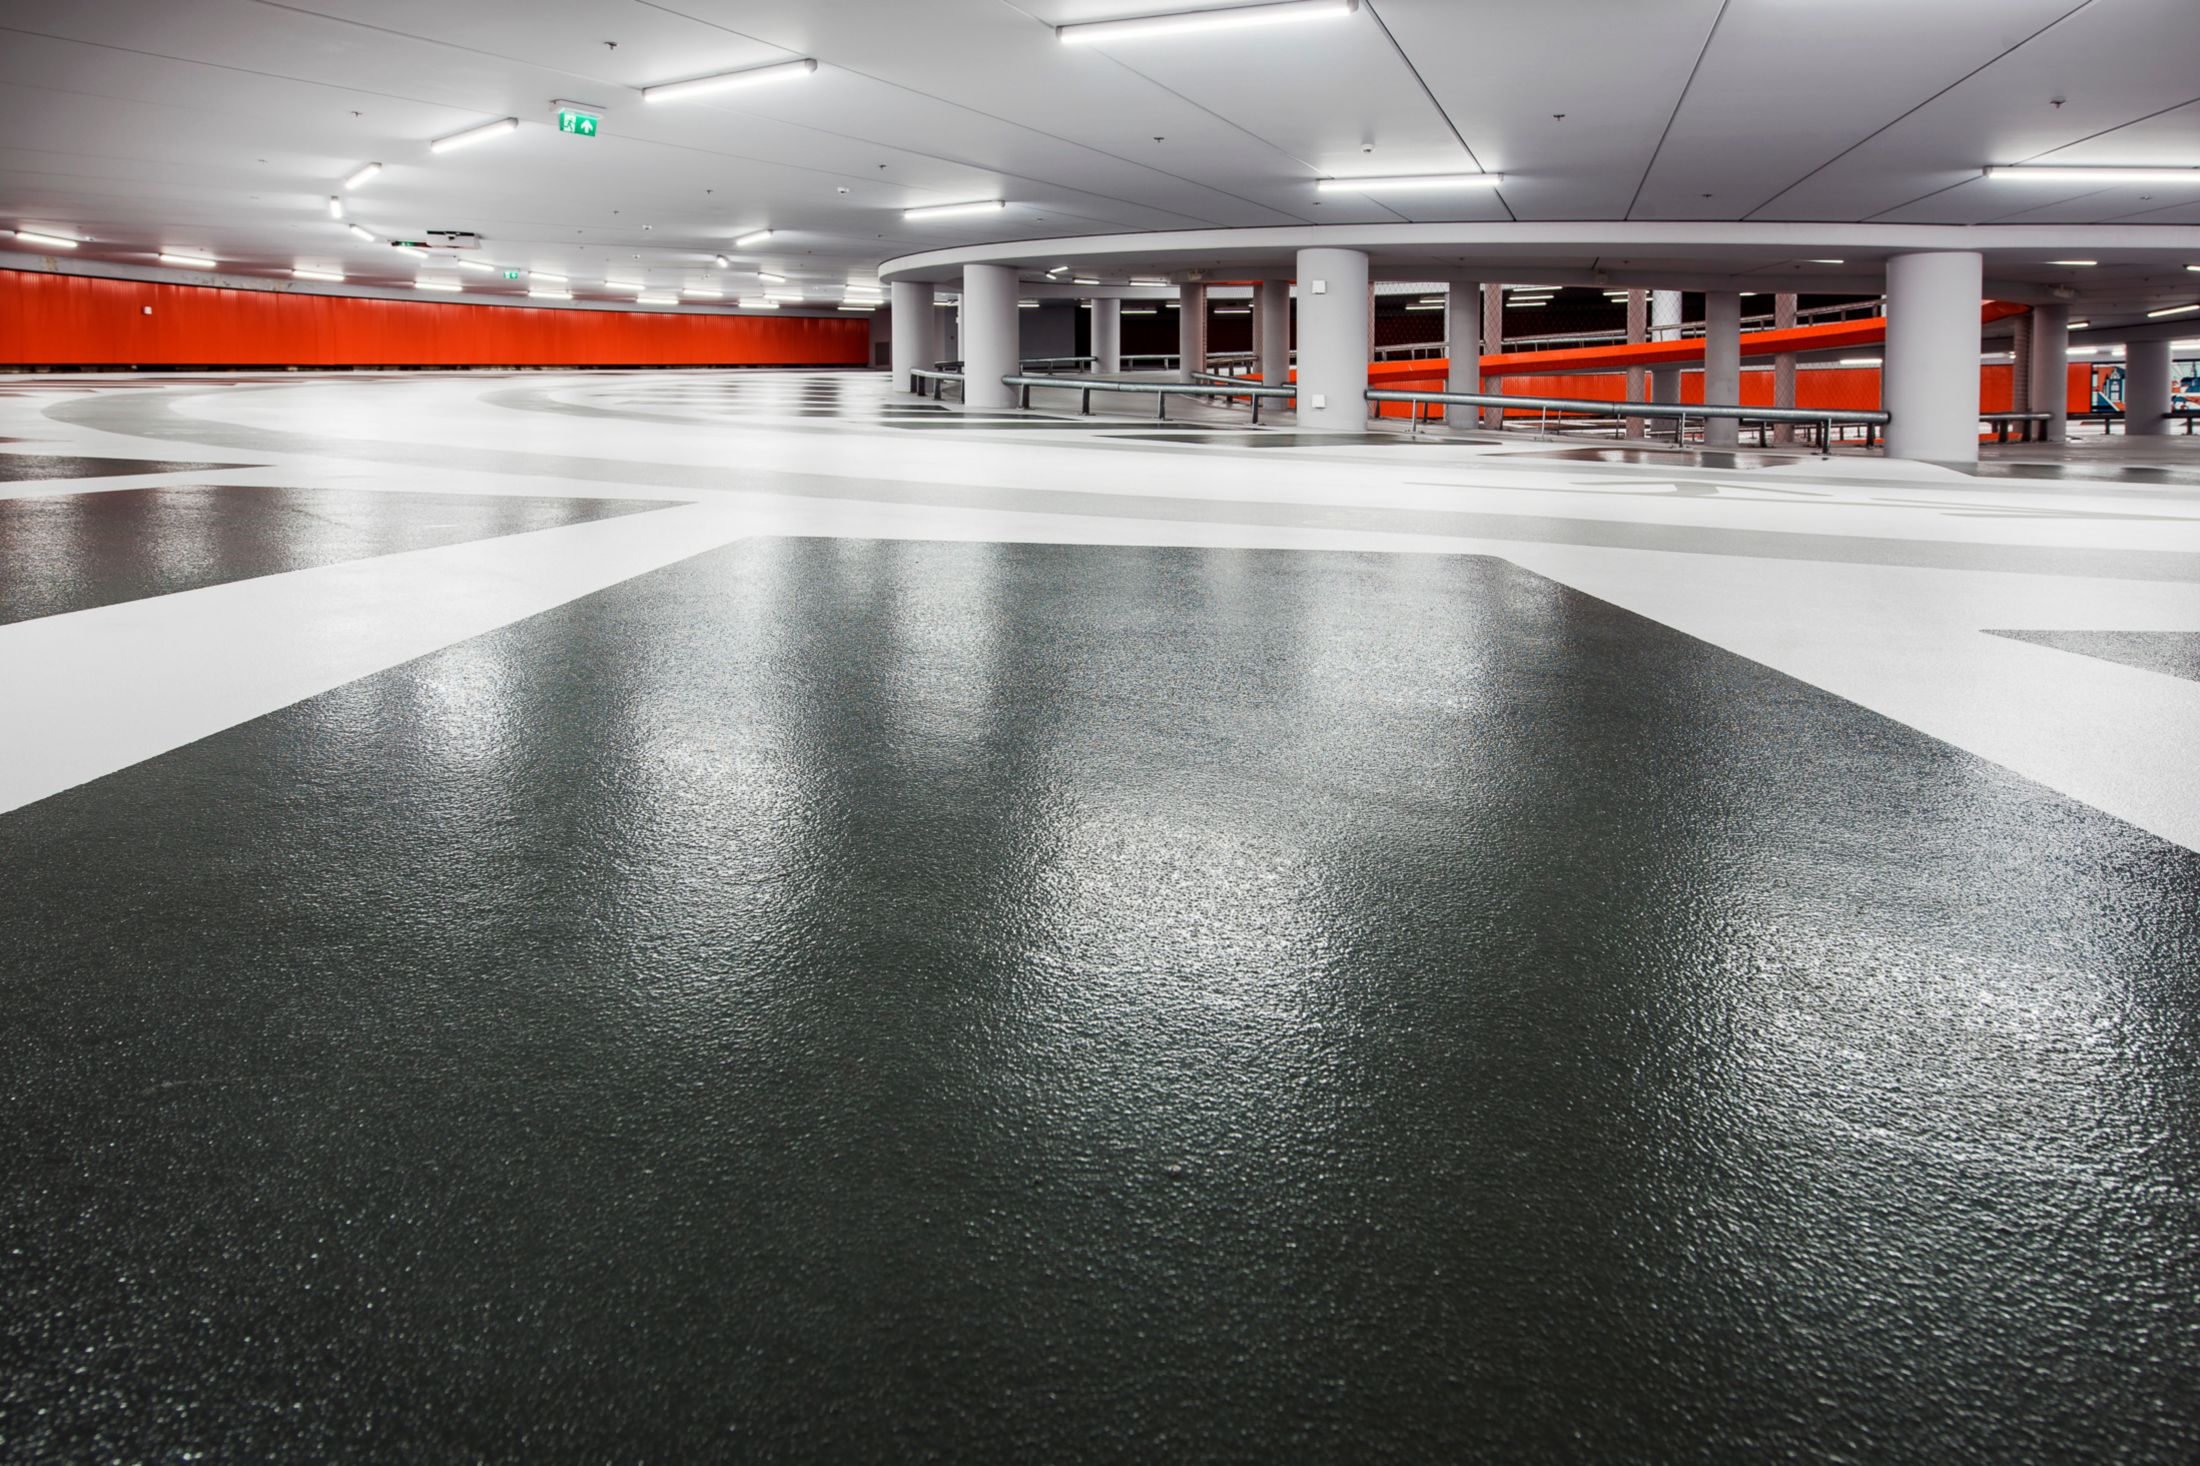 Sika flooring system in parking garage Lammermarkt in Leiden Netherlands